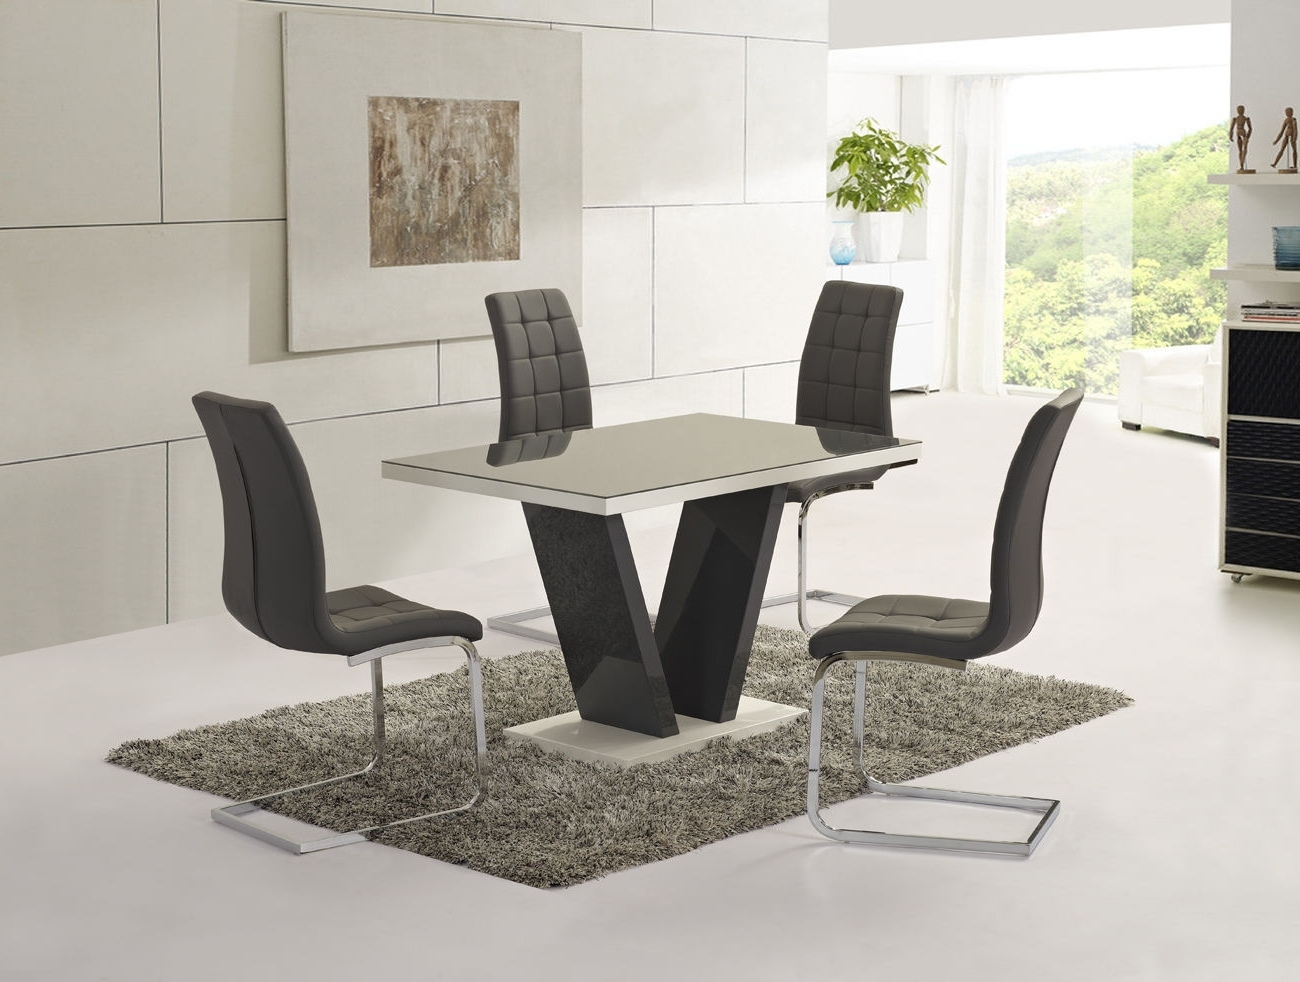 Grey Glass Dining Tables Inside Most Recent Ga Vico Gloss Grey Glass Top Designer 160Cm Dining Set – 4 6 Grey (Gallery 9 of 25)